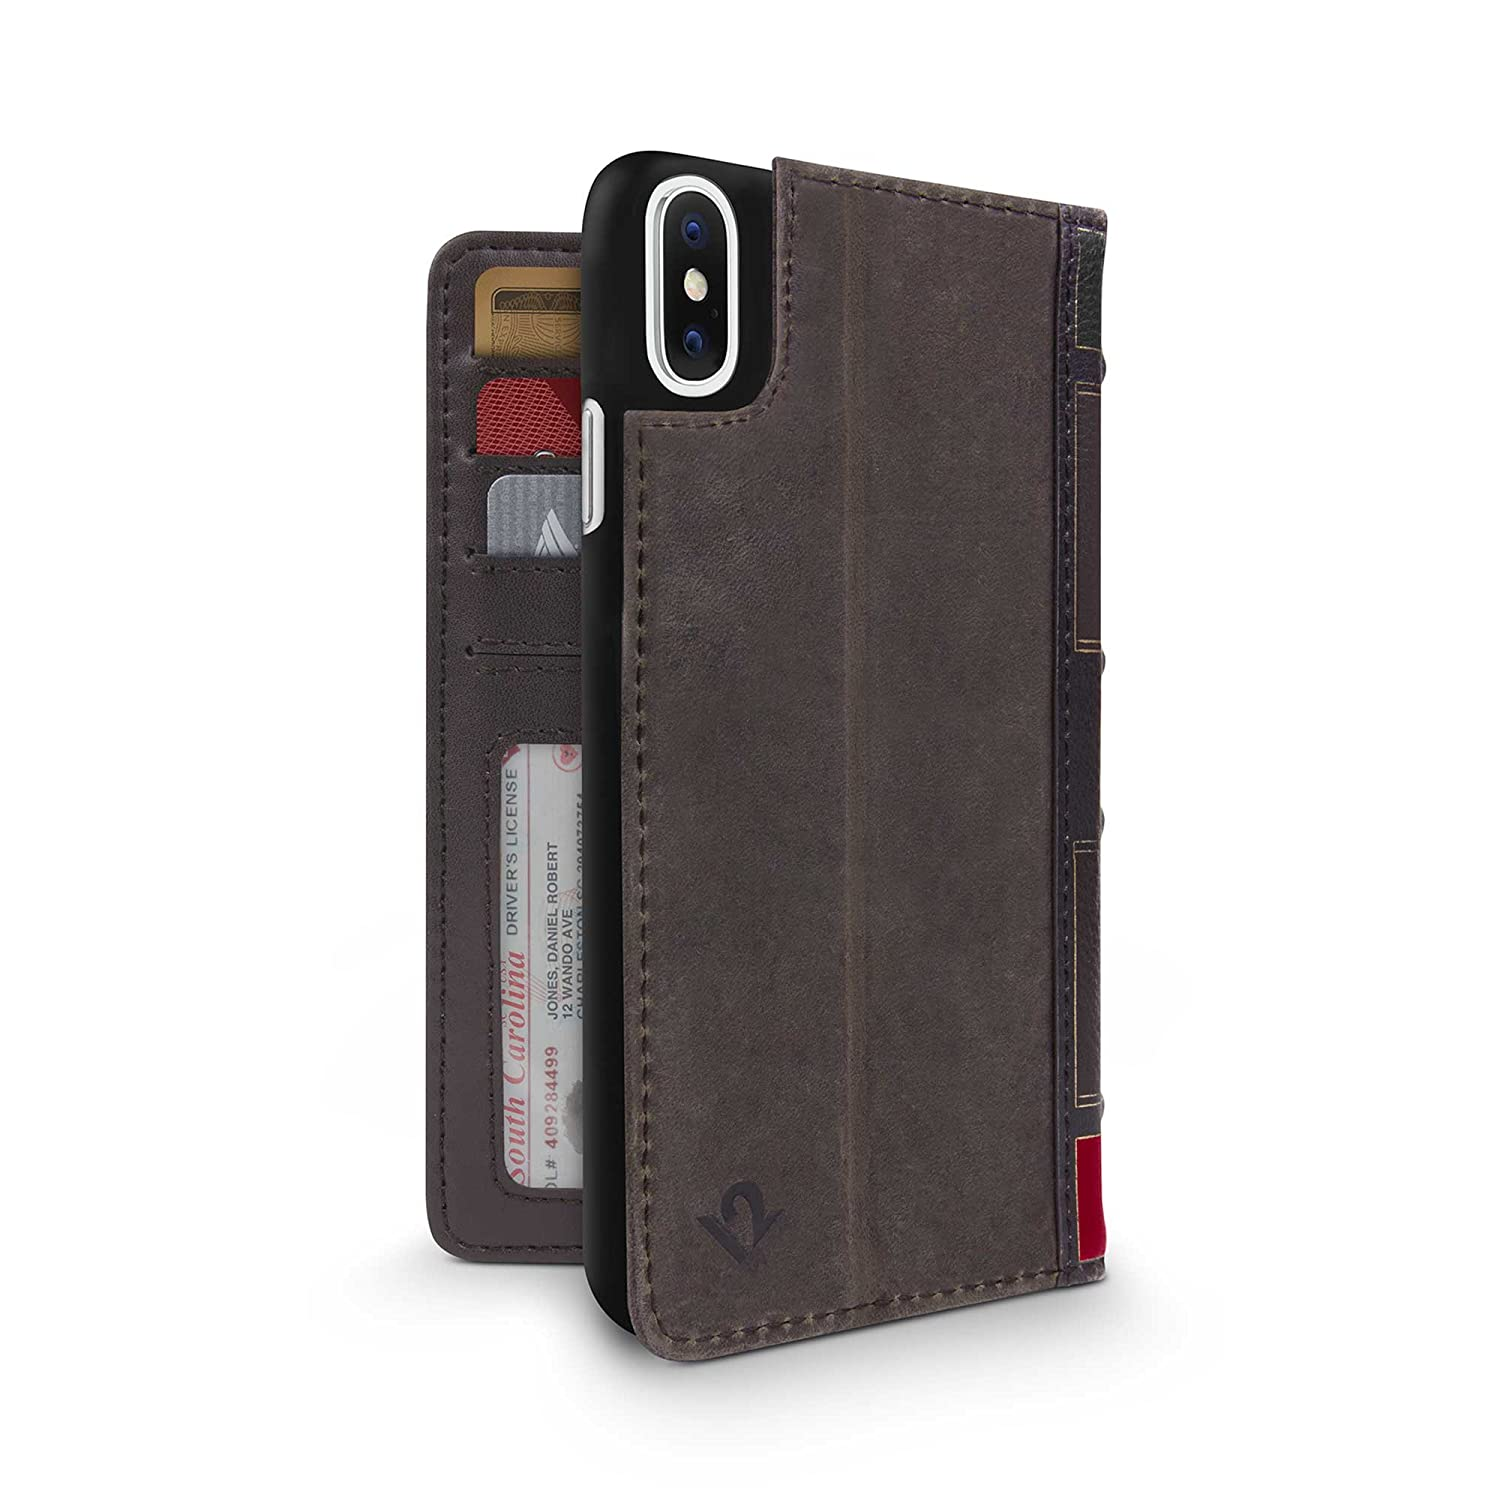 b72b5e04c5c2 Amazon.com: Twelve South BookBook for iPhone XS / iPhone X | 3-in-1 Leather  Wallet Case, Display Stand and Removable Shell (Brown): Cell Phones & ...